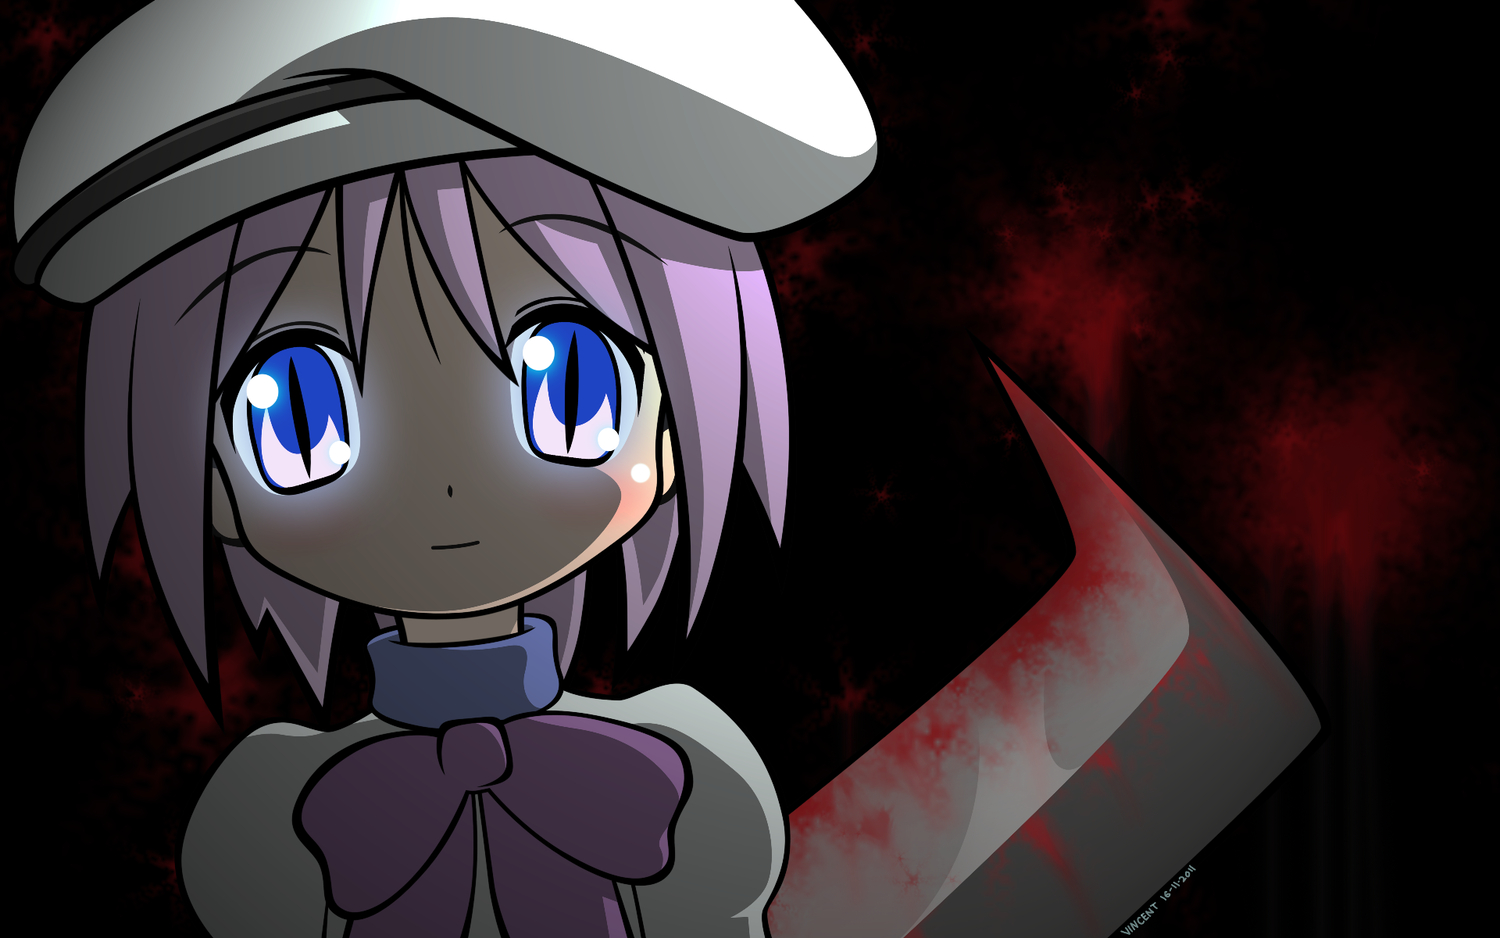 blood blue_eyes blush cosplay higurashi_no_naku_koro_ni hiiragi_tsukasa knife lucky_star parody pink_hair purple_hair short_hair weapon